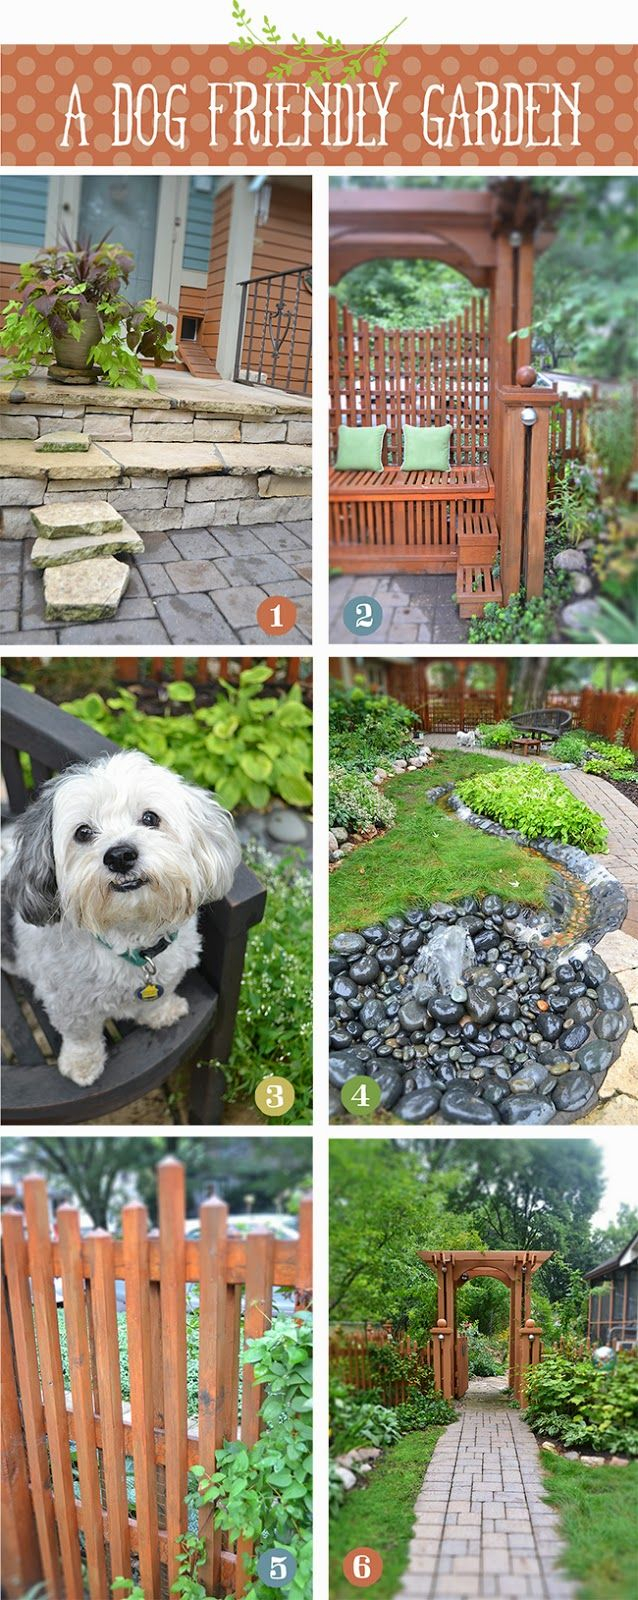 Elite 171 Best Dog Friendly Garden Ideas Images On Pinterest | Backyard intended for High Quality Dog Friendly Backyard